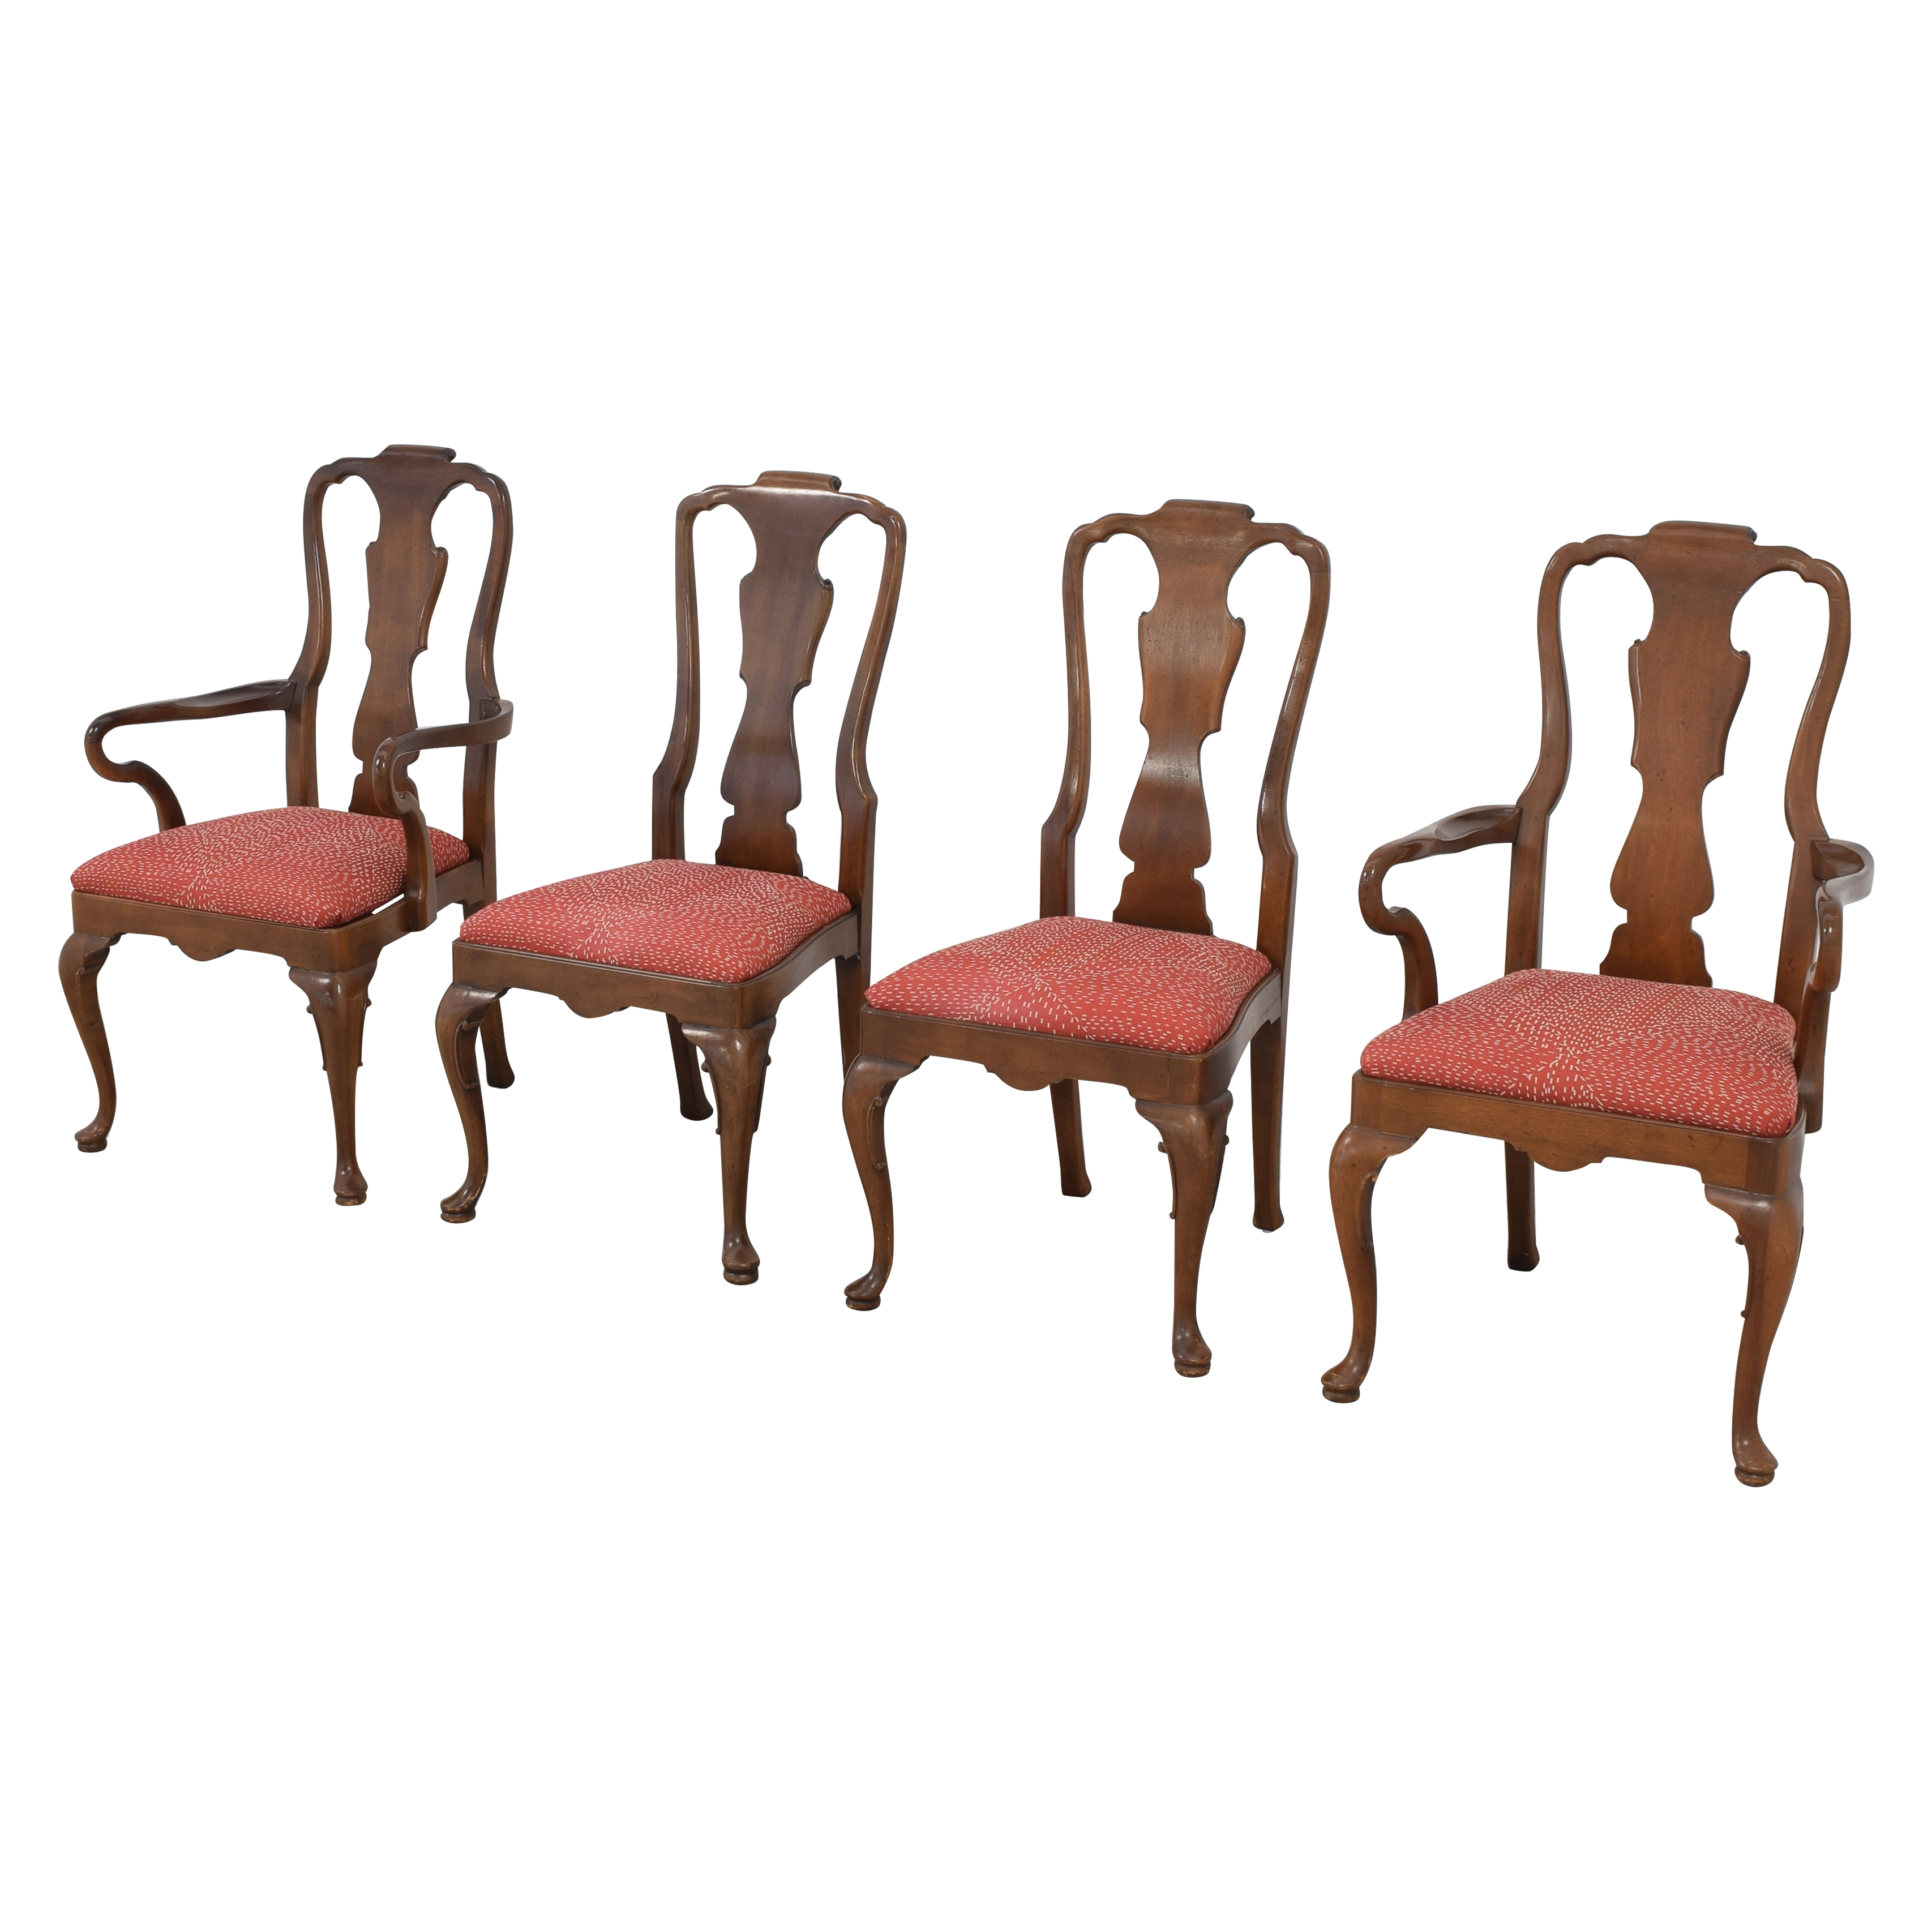 buy Henredon Queen Anne Chairs Henredon Furniture Dining Chairs